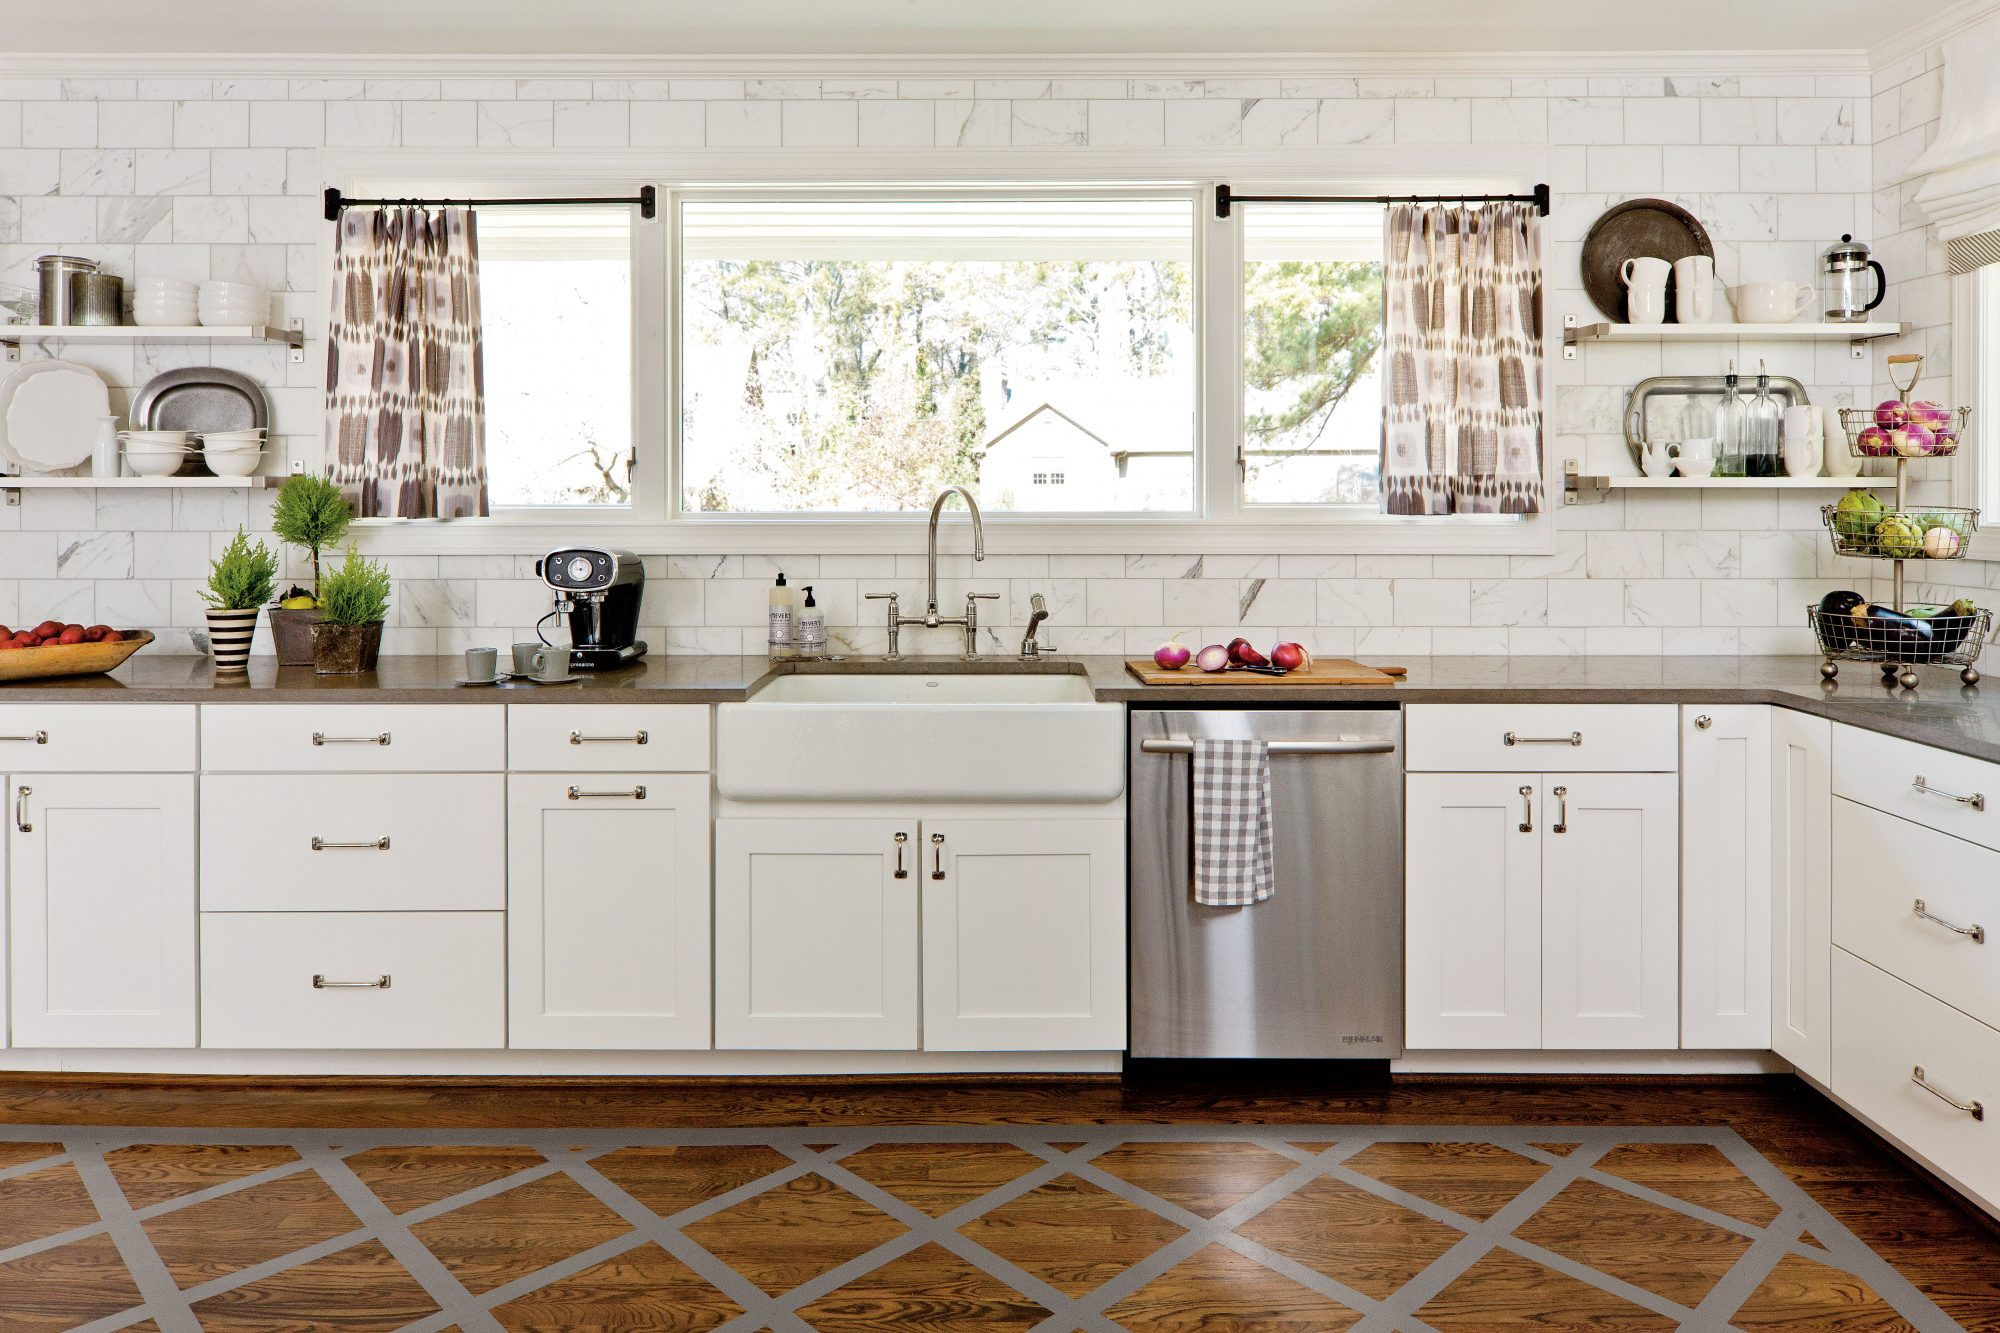 Classic Kid-Friendly Kitchen: After